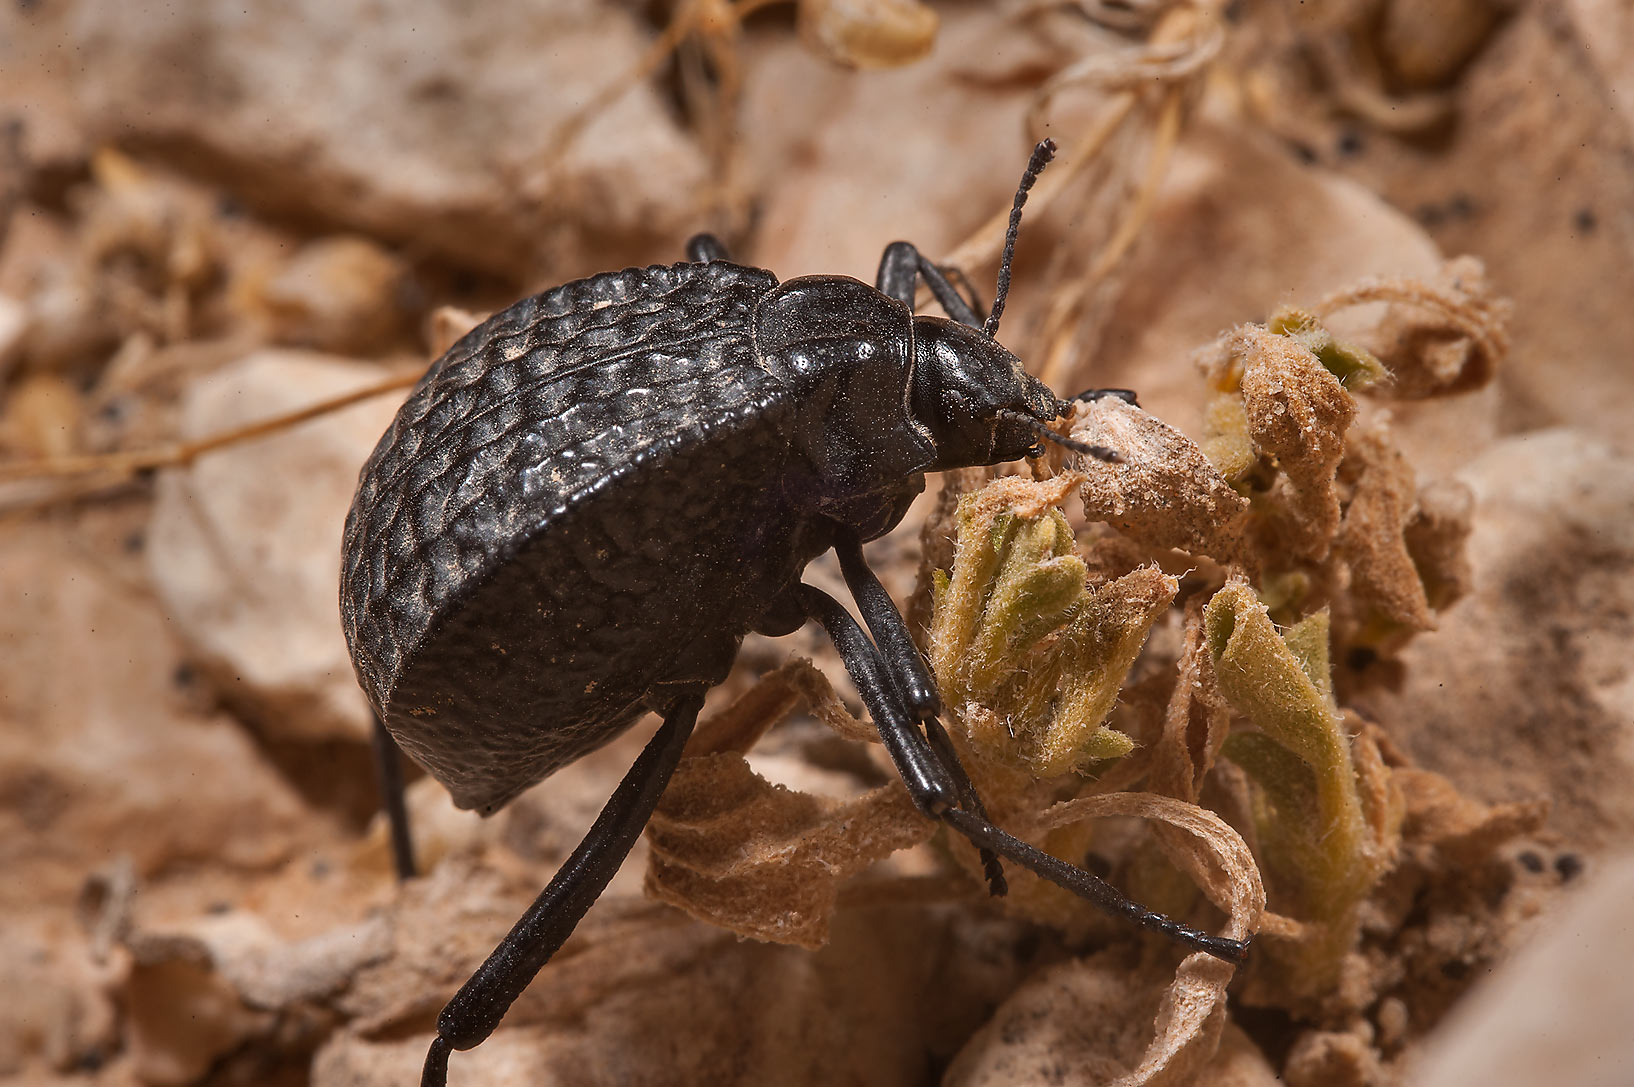 Pitted darkling beetle (Adesmia cancellata...of Al Magdah farms in northern Qatar